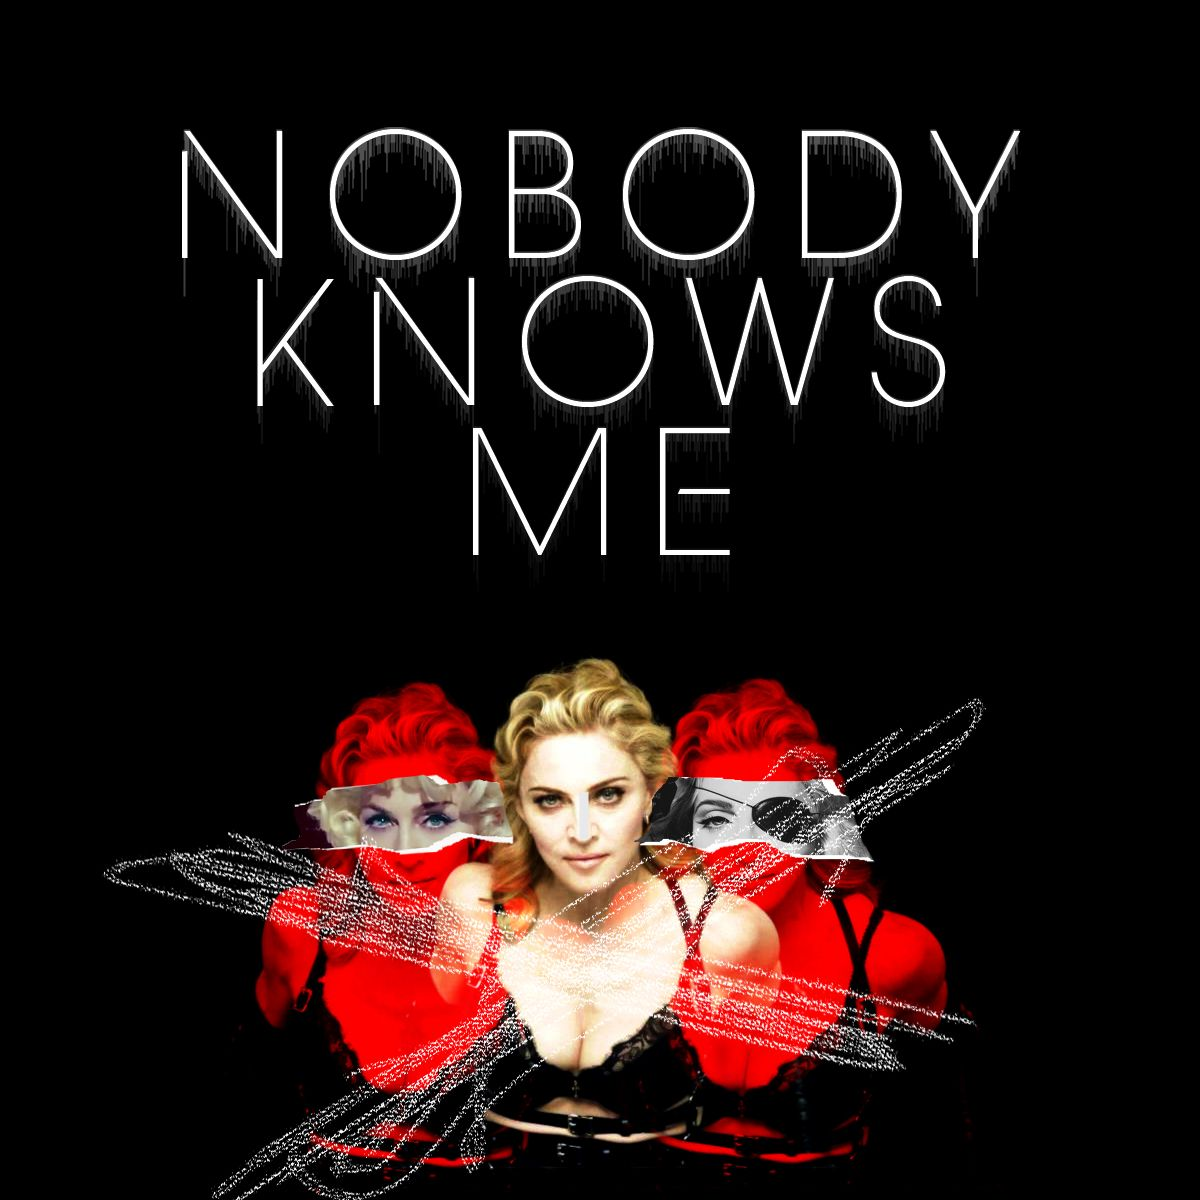 Madonna – Nobody Knows Me (single cover art)